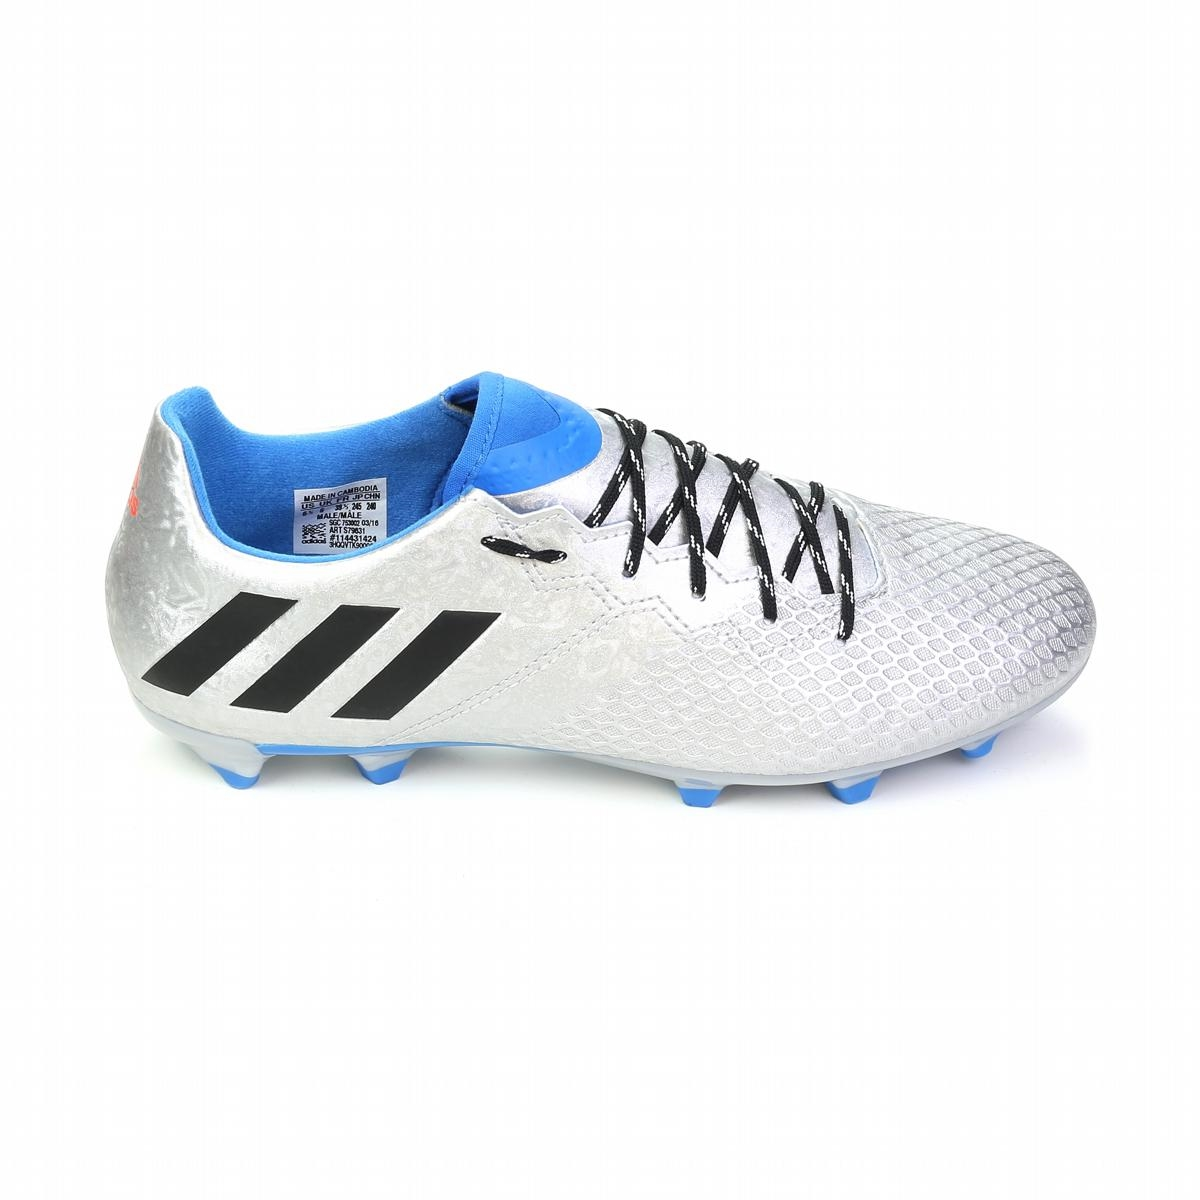 008807370f5  71.99 - Adidas Messi 16.3 FG Soccer Cleats (Silver Metallic Black ...